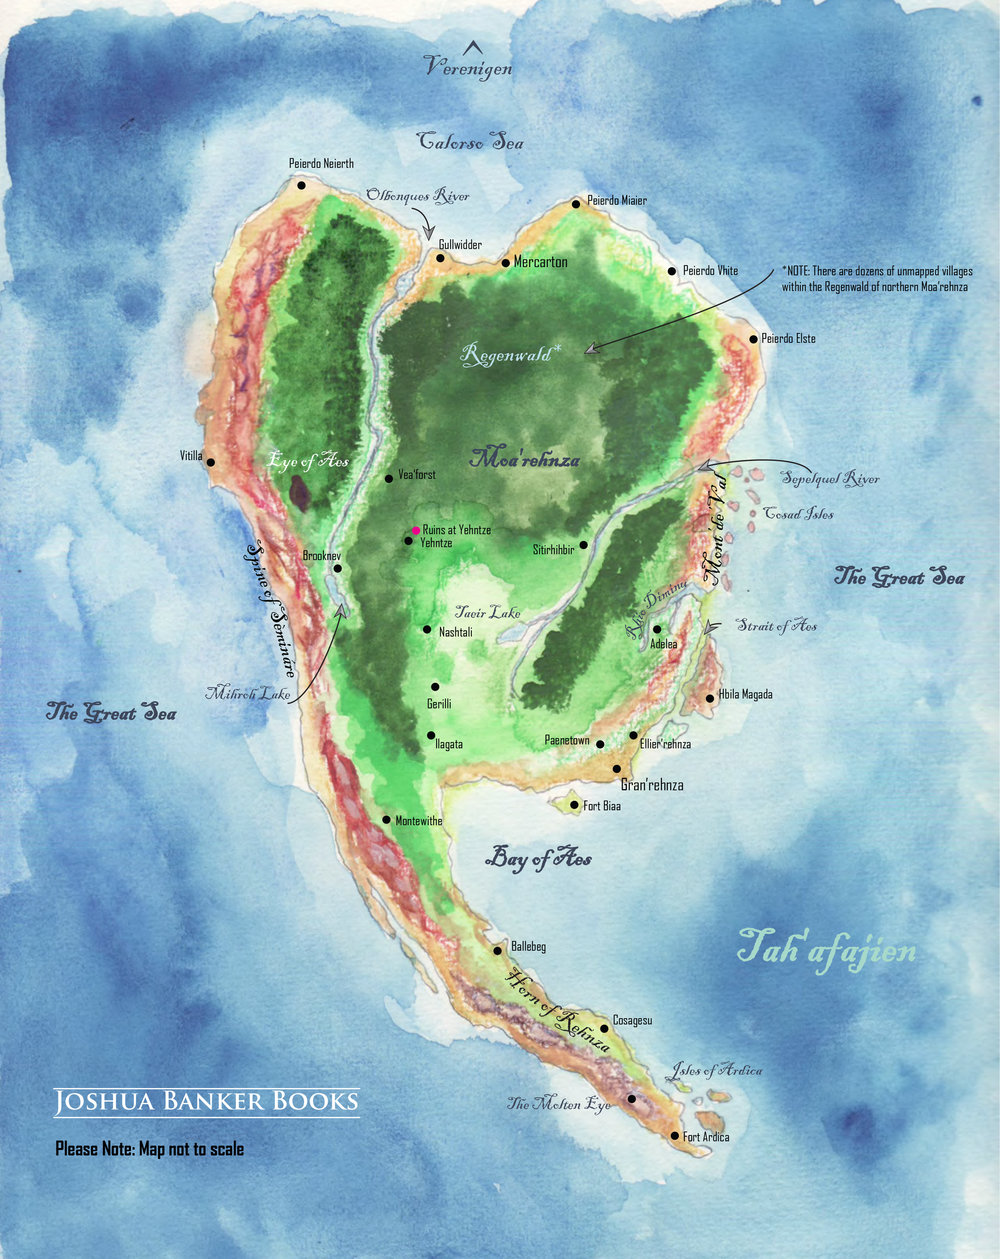 Map of Moa'rehnza